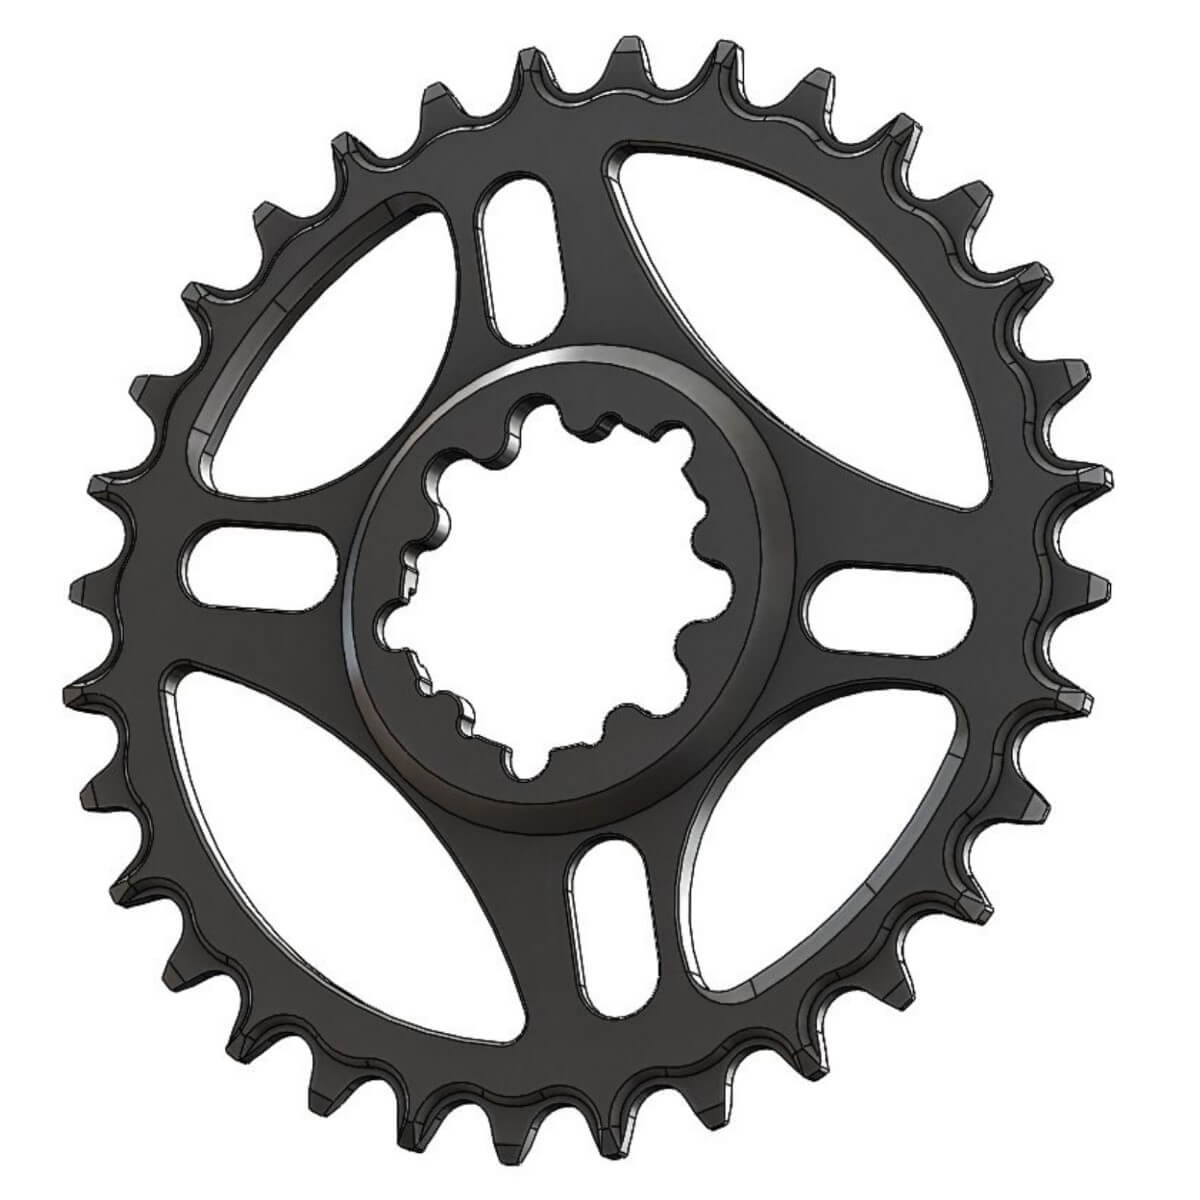 C28 Pilo Chainring Narrow Wide 36T for Sram direct mount.